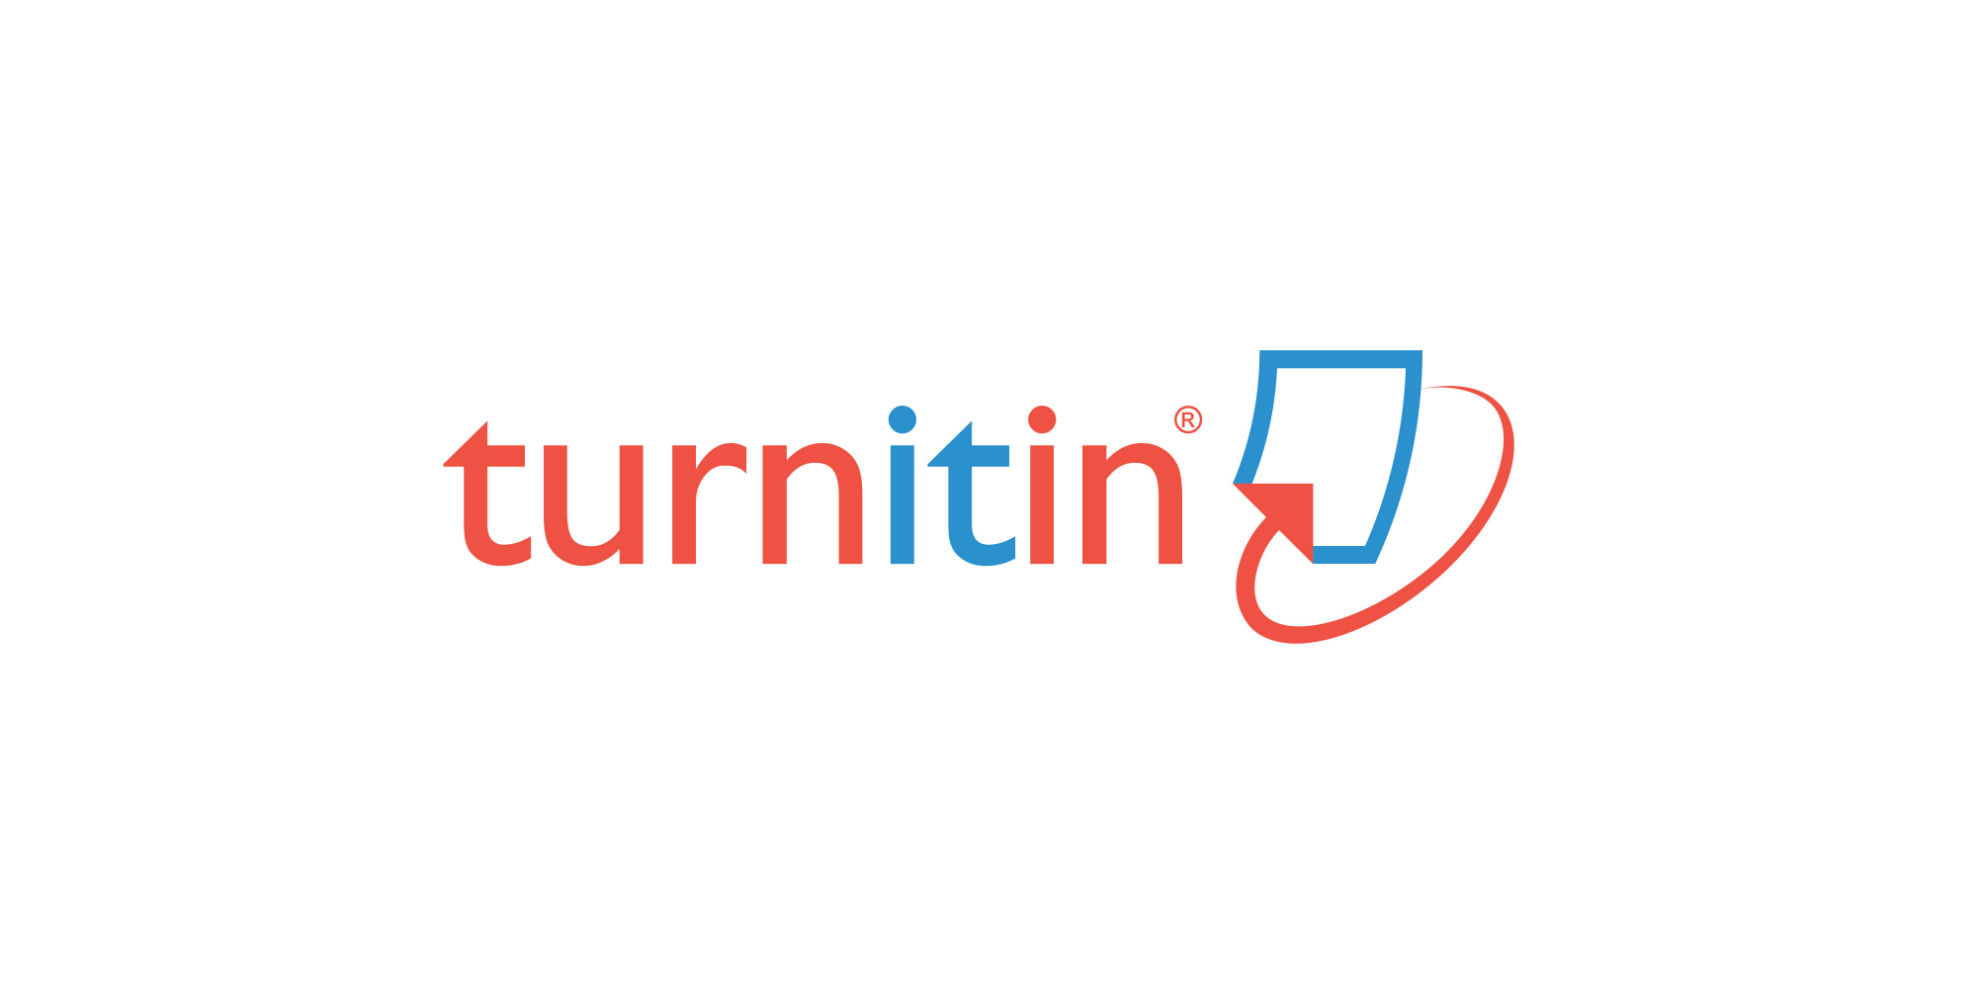 Detecting Similarity in Turnitin